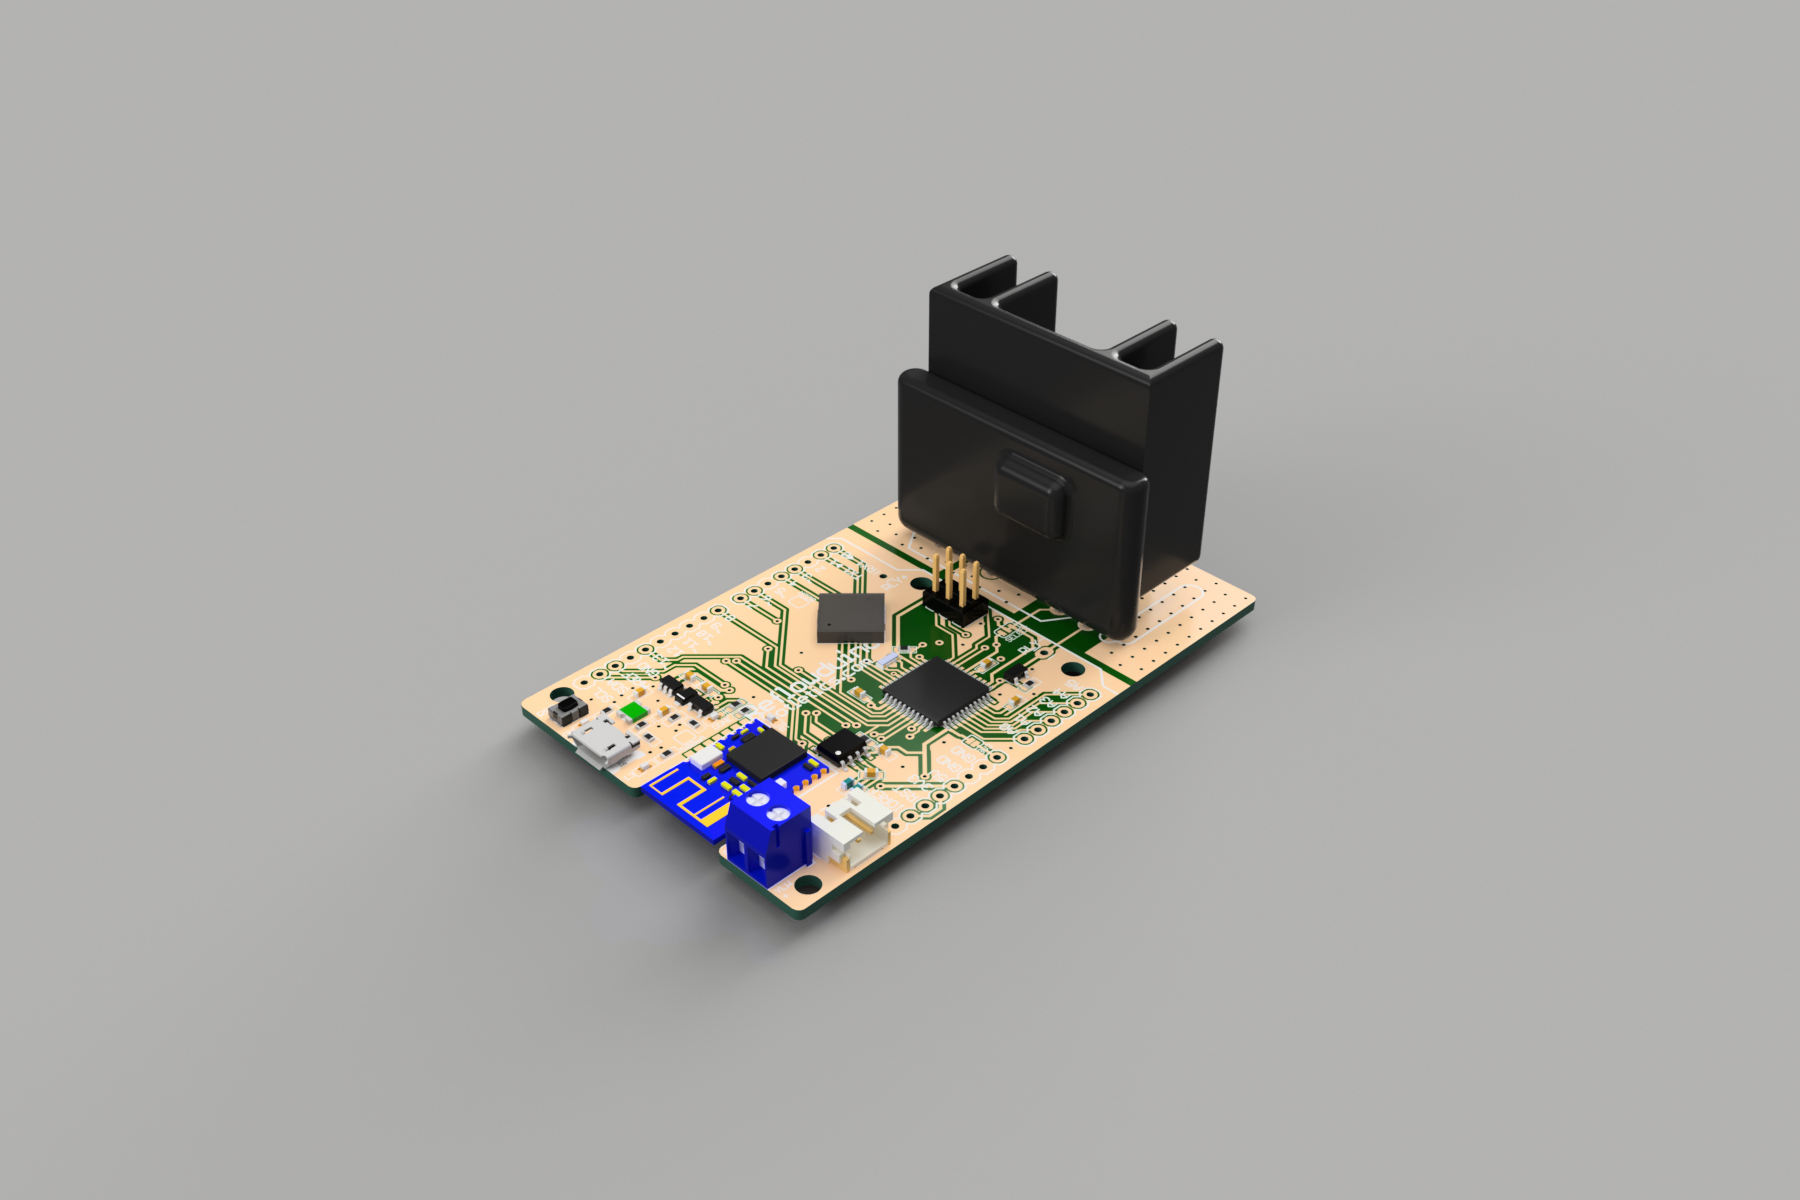 Picture of DIY Reflow Oven With Reflowduino